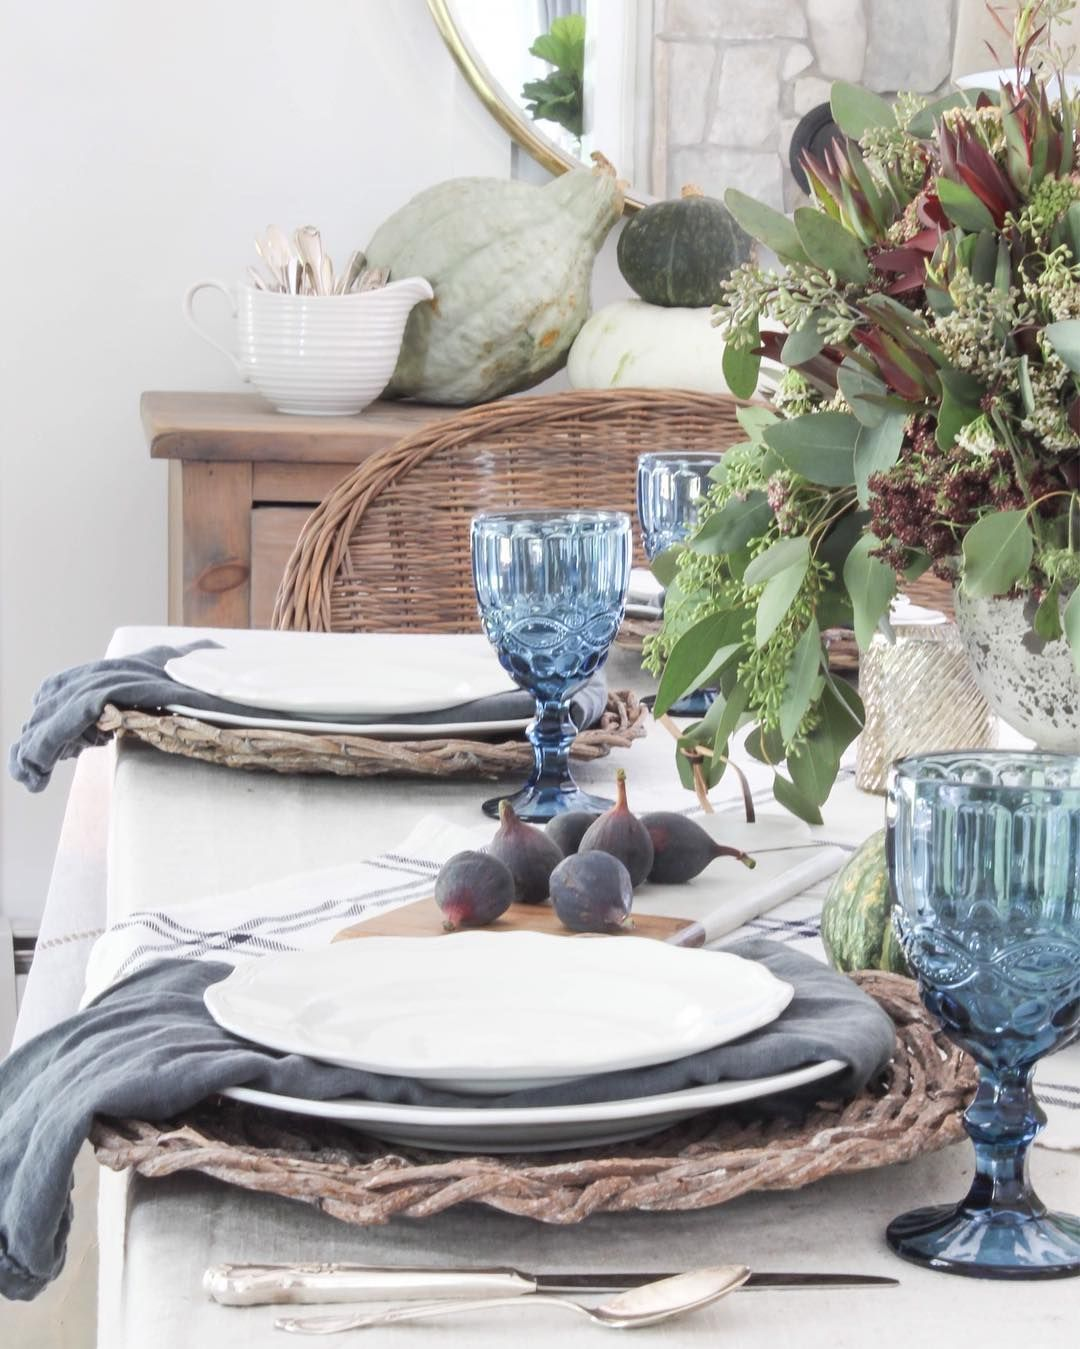 pin by marycasachic on fall tablescapes in 2018 pinterest rh pinterest com